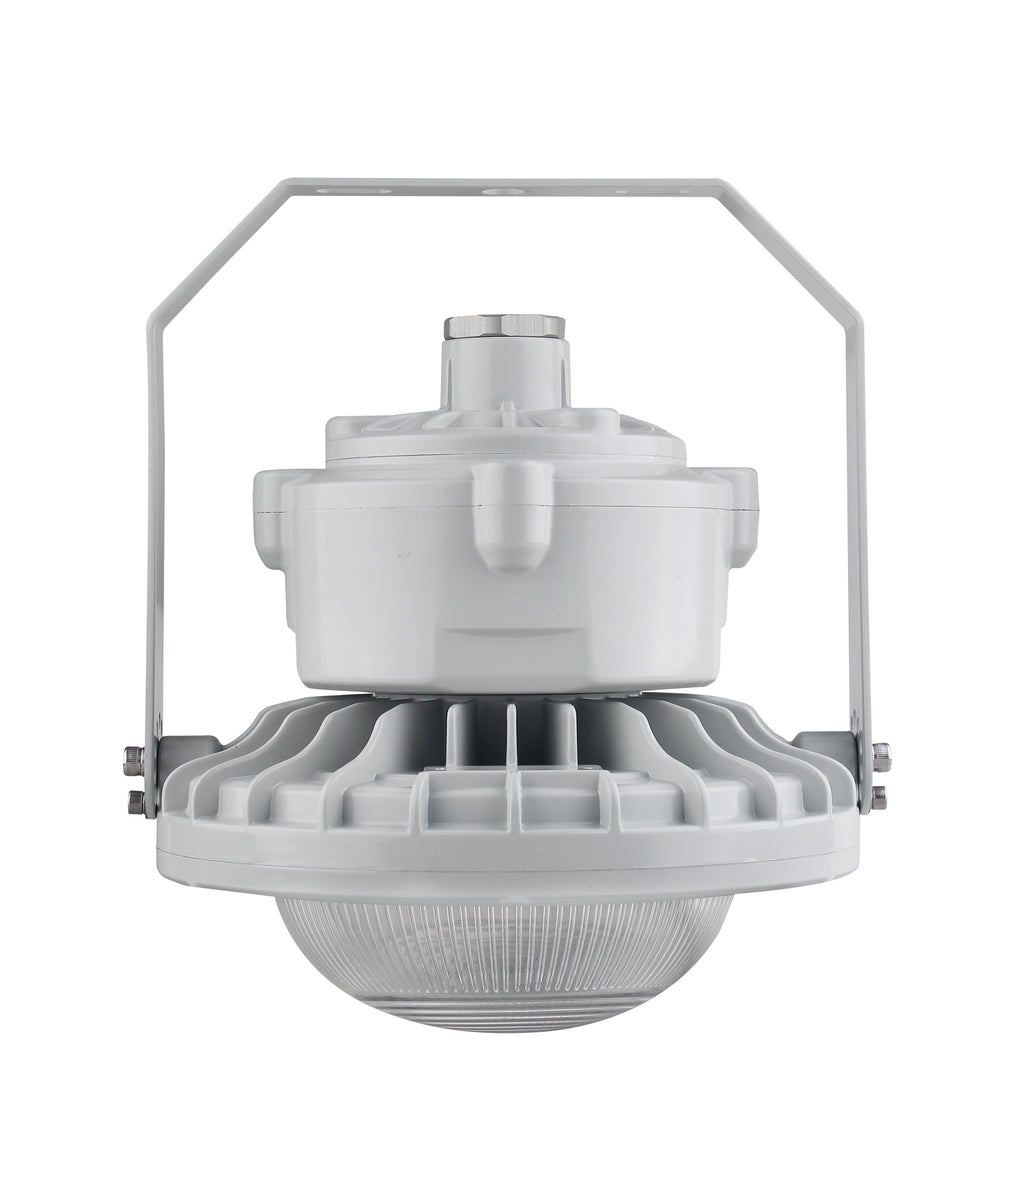 60W LED Explosion Proof Light for Class I Division 2 Hazardous Locations - 7400 Lumens - 175W HID Equivalent